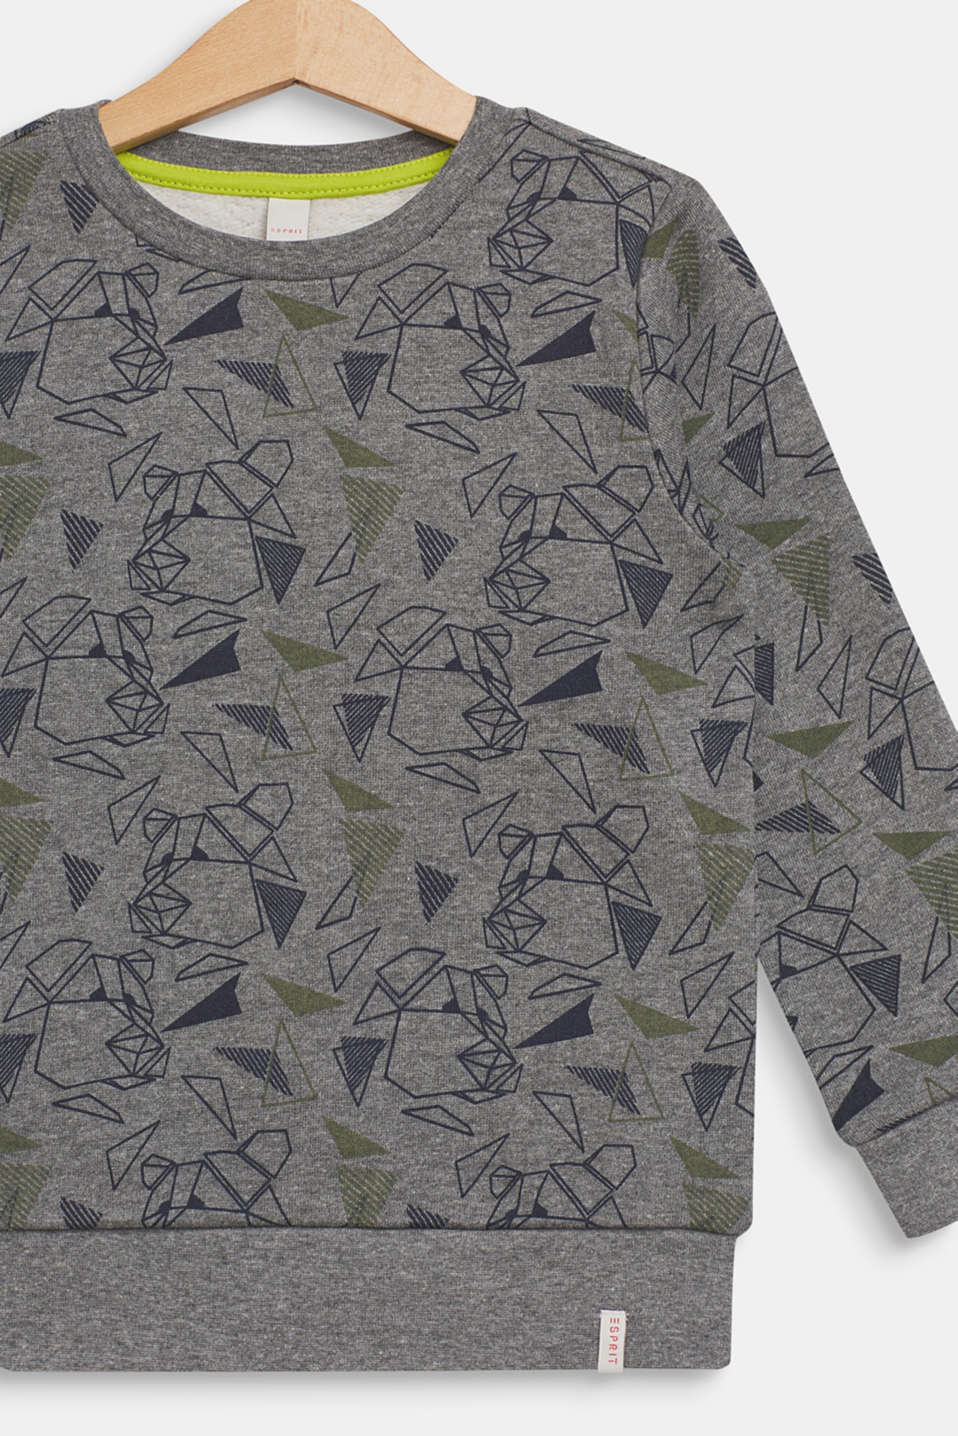 Sweatshirt with a cool graphic bear print, DARK HEATHER G, detail image number 2